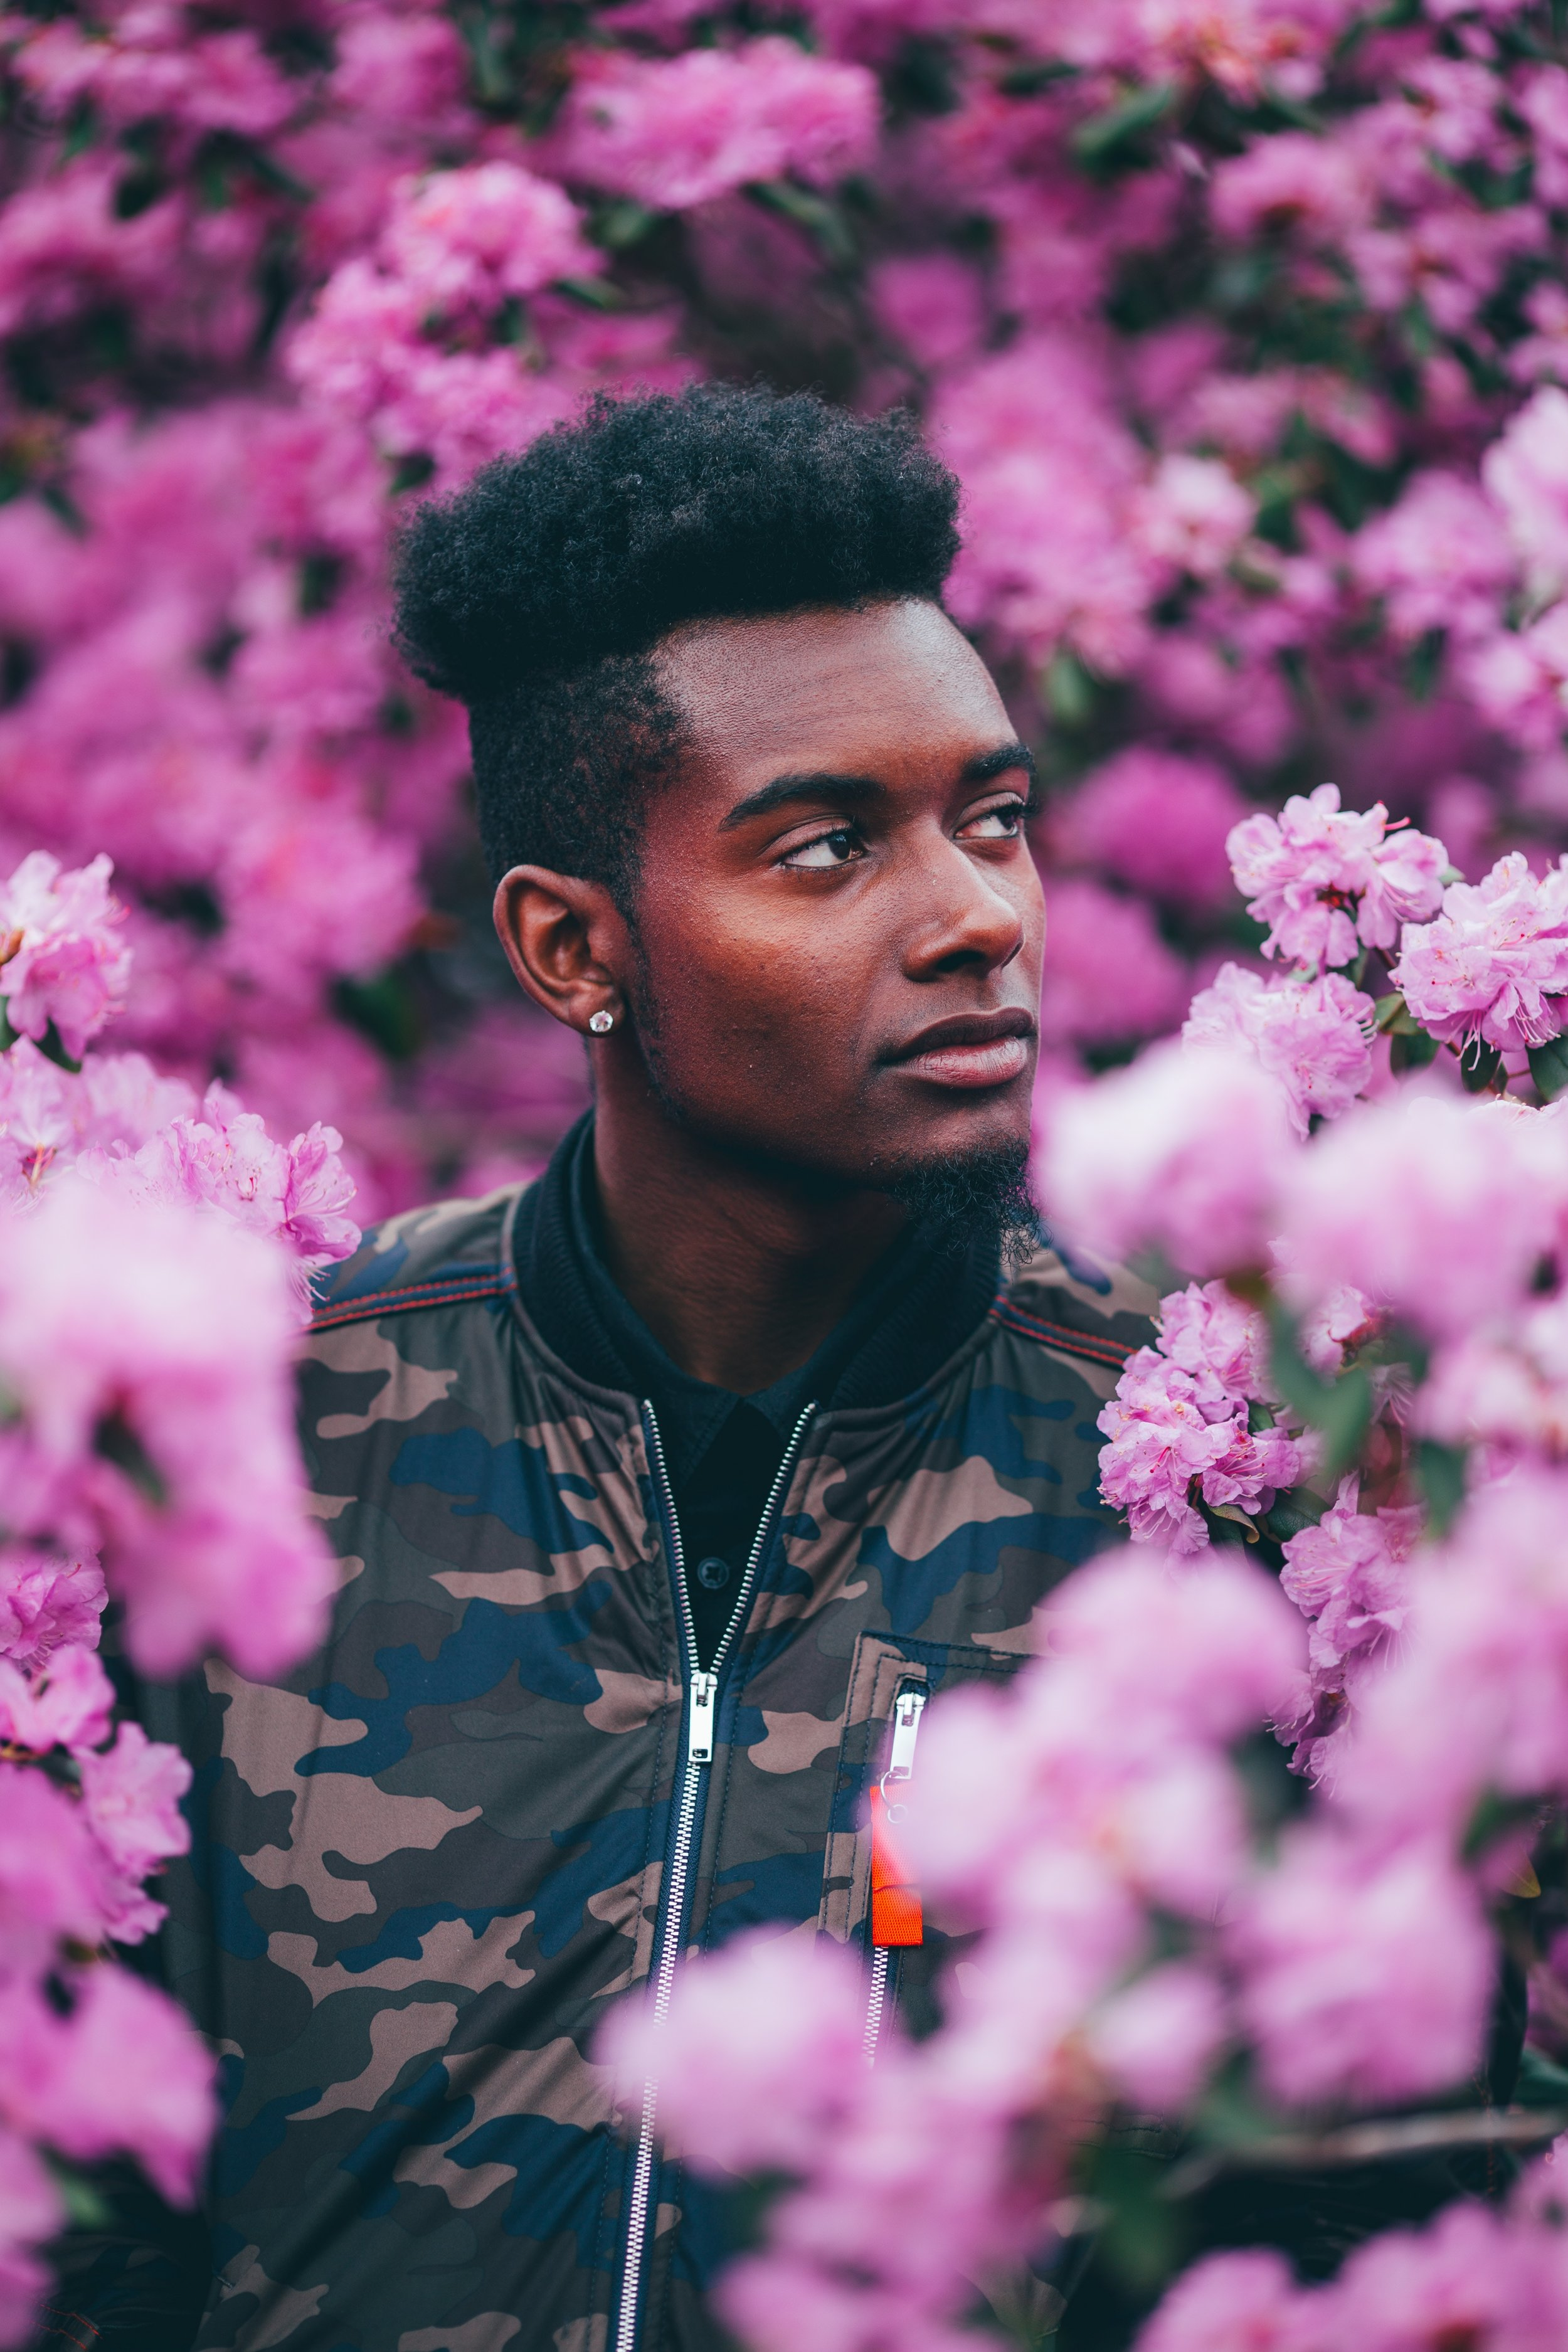 black-man-surrounded-by-pink-flowers-puckn-khaos-article